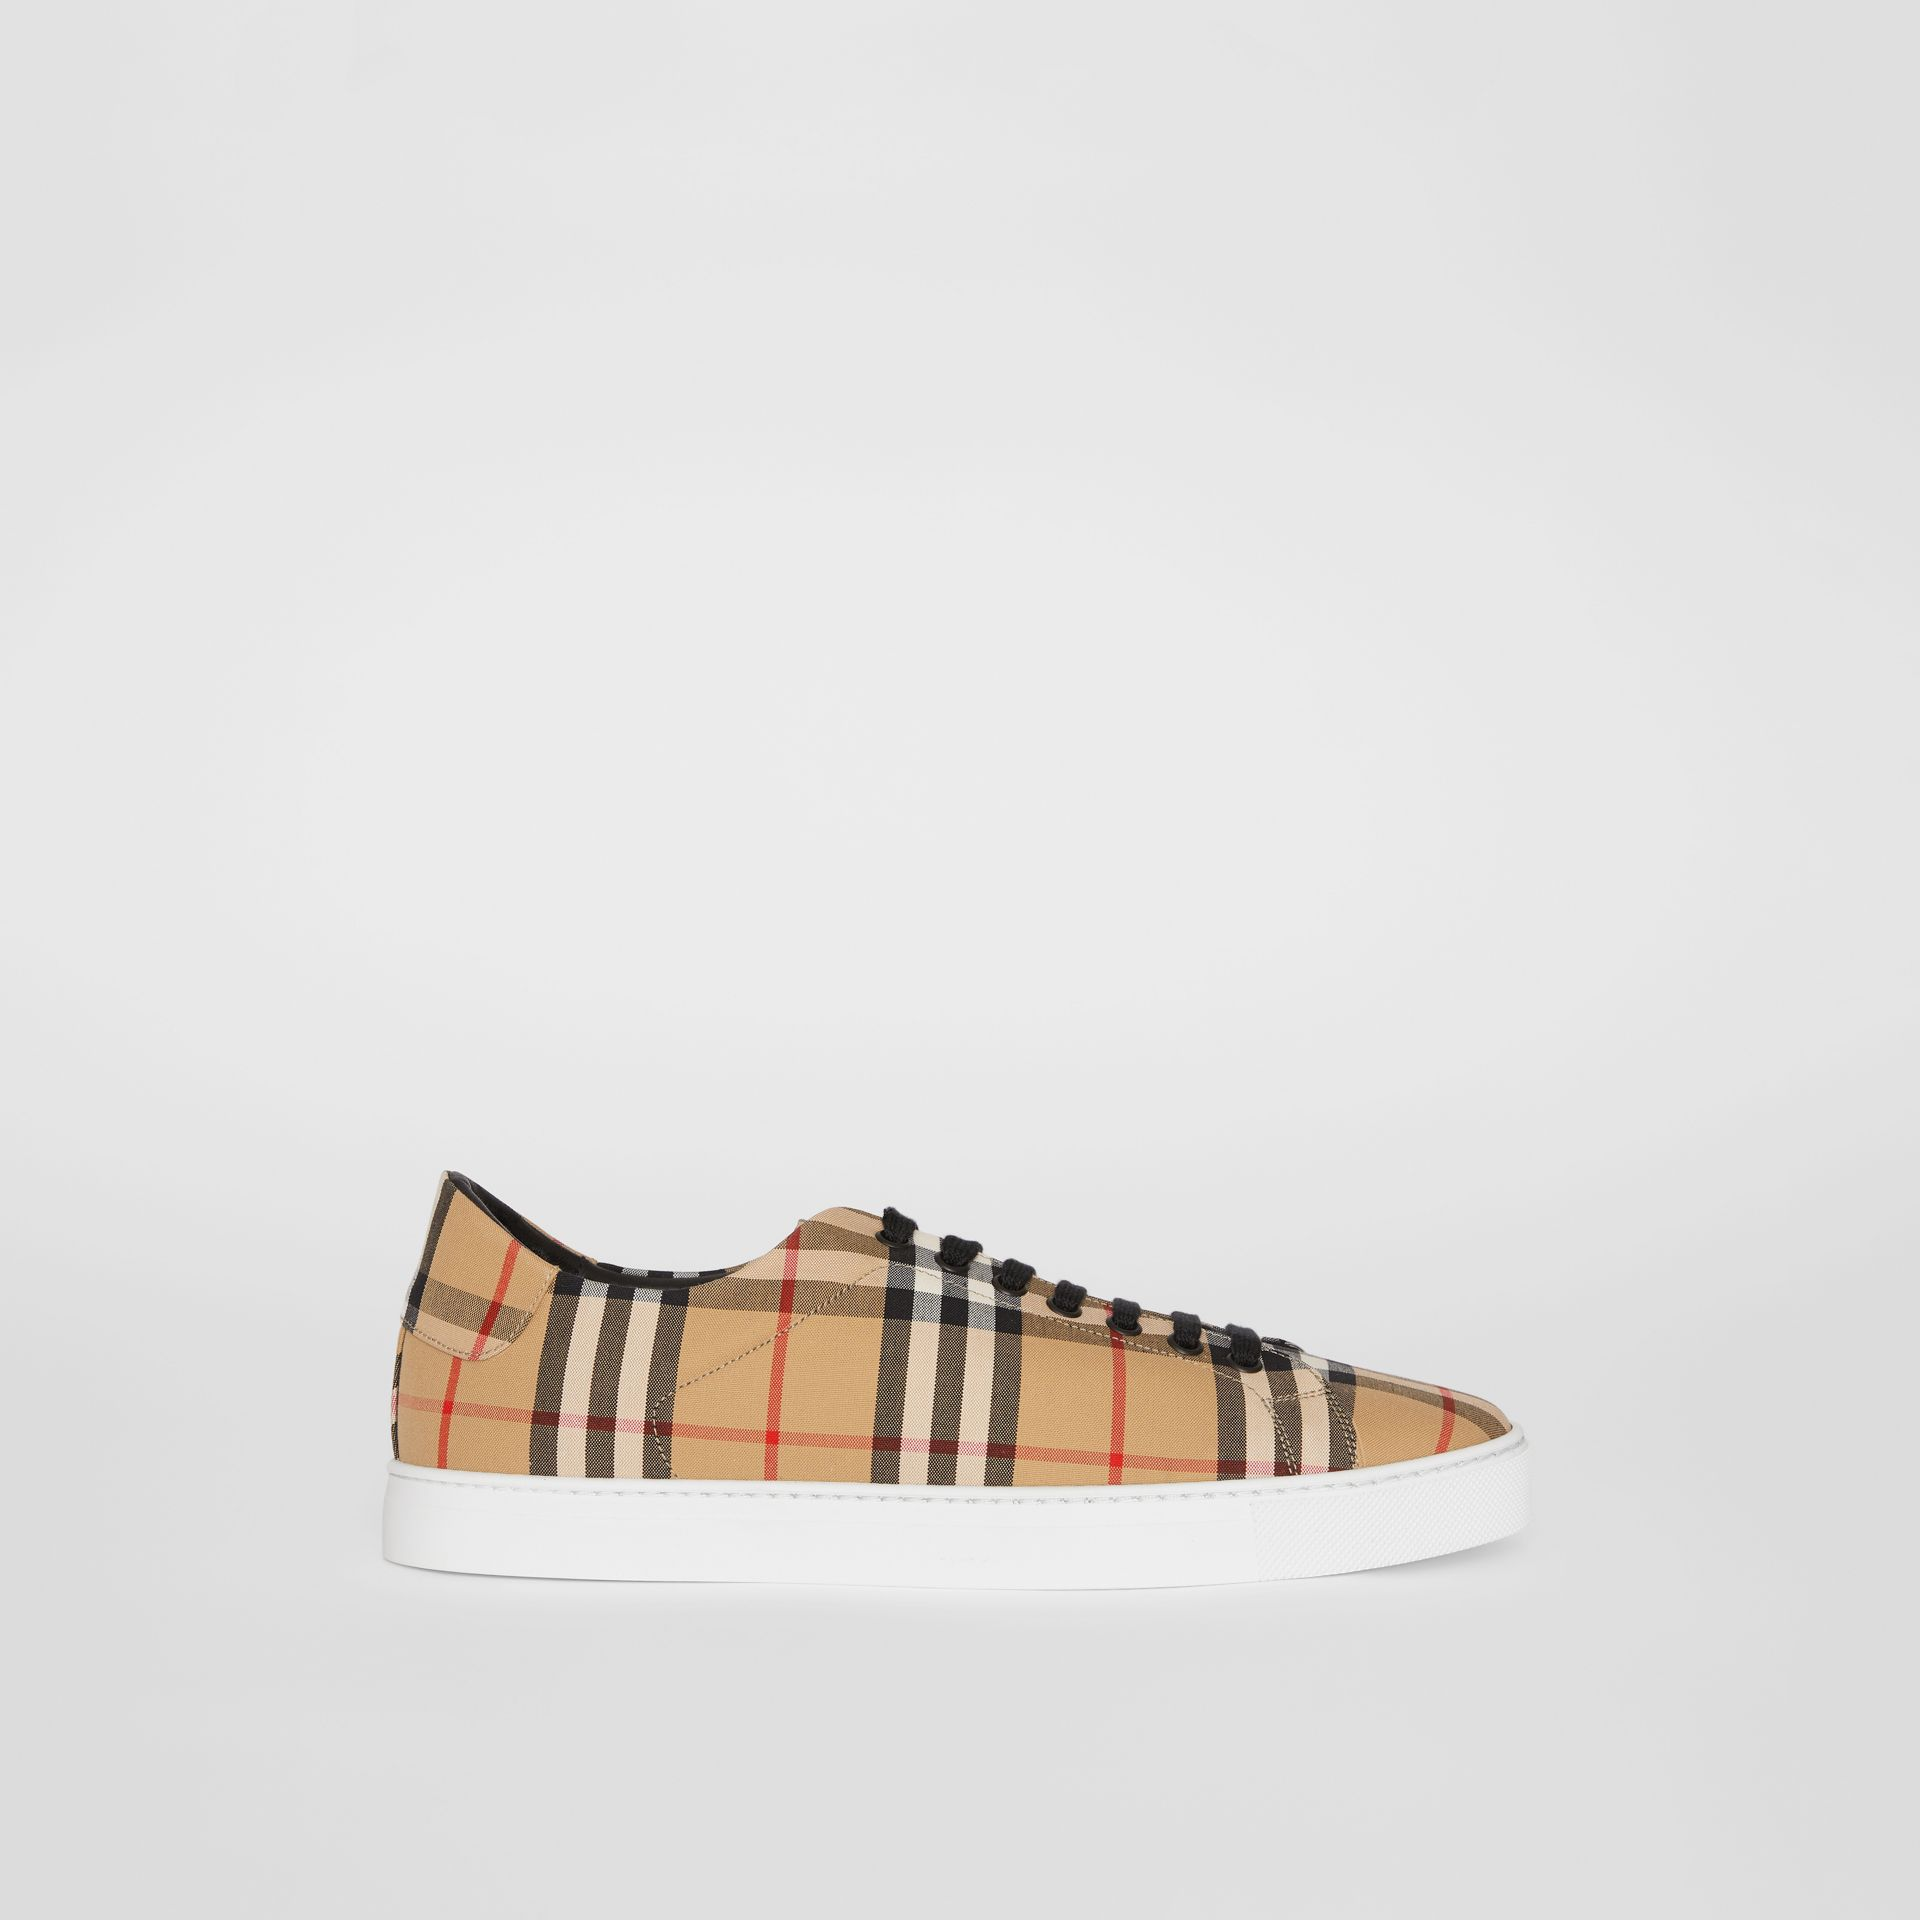 Sneakers en cuir à motif Vintage check (Jaune Antique) - Homme | Burberry Canada - photo de la galerie 5